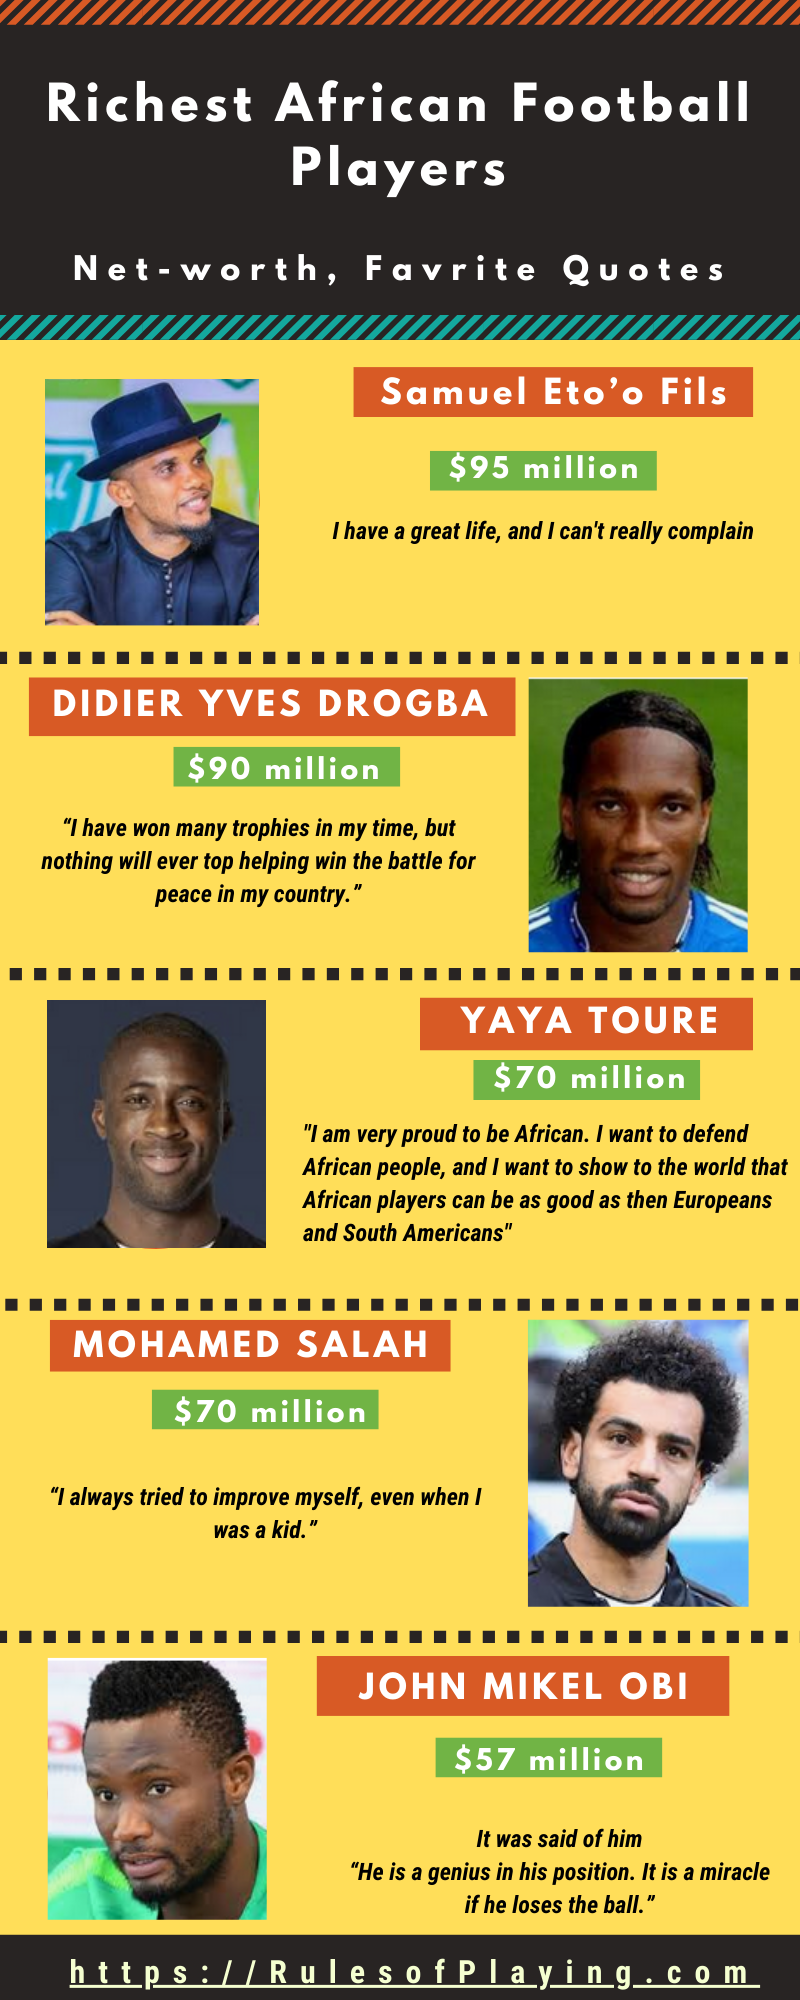 Richest African Football players, soccer players